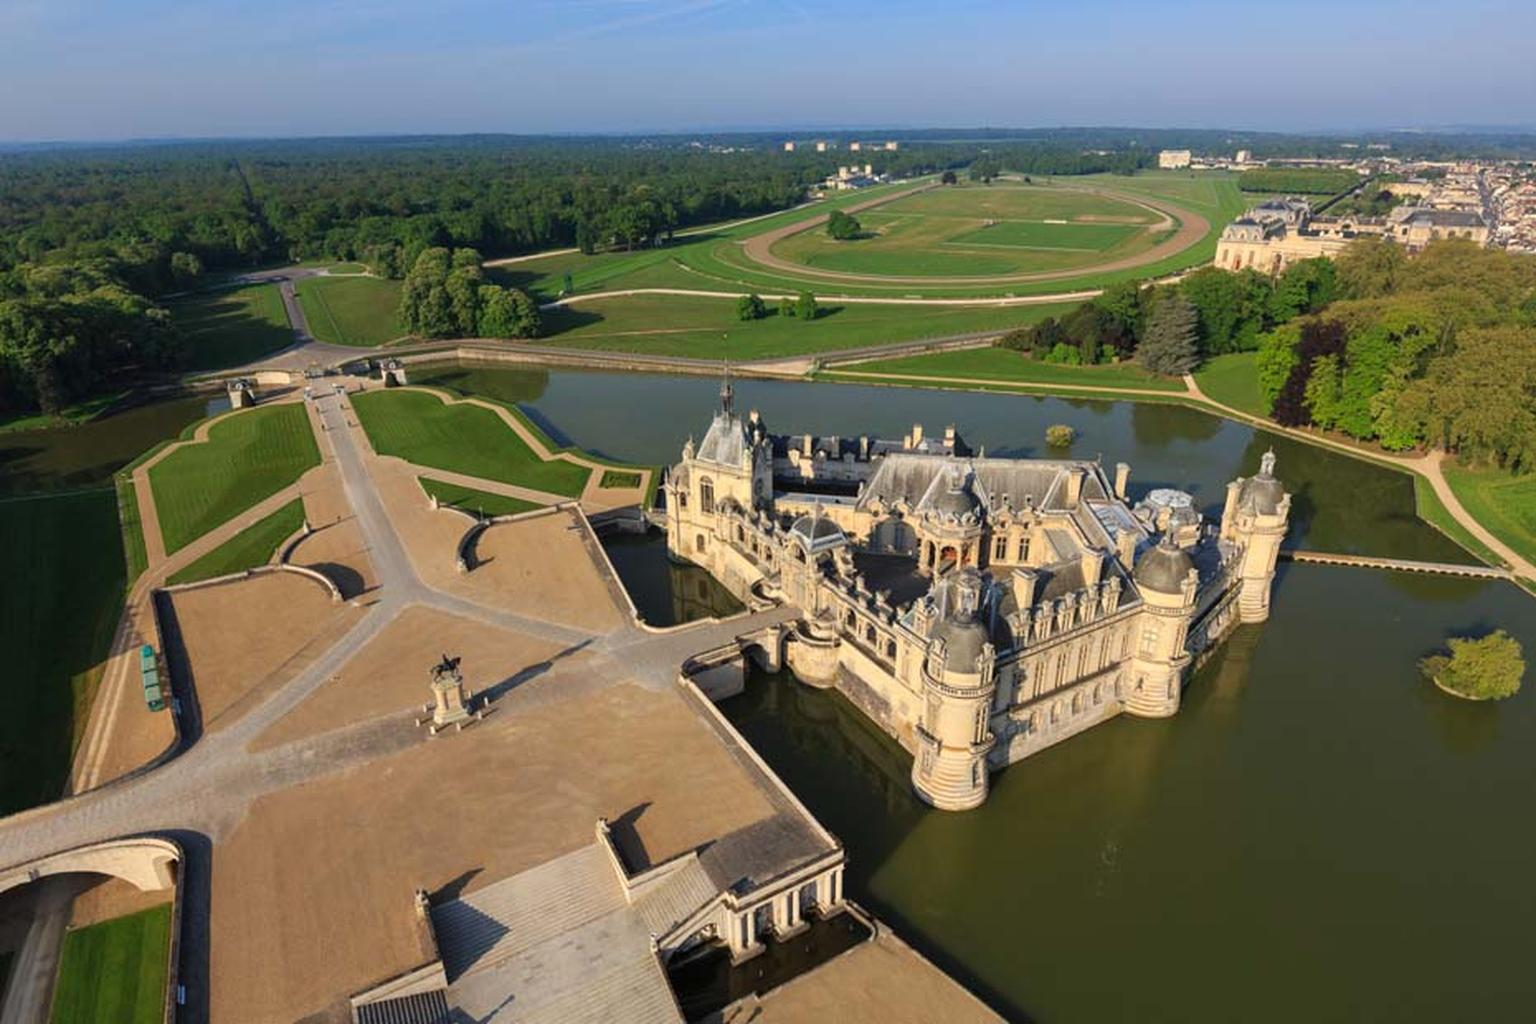 Richard Mille sponsored Chantilly Arts & Elegance - the first ever event celebrating all things French - held in the grounds of Chantilly castle near Paris. Image by: Jerome Huyvet.